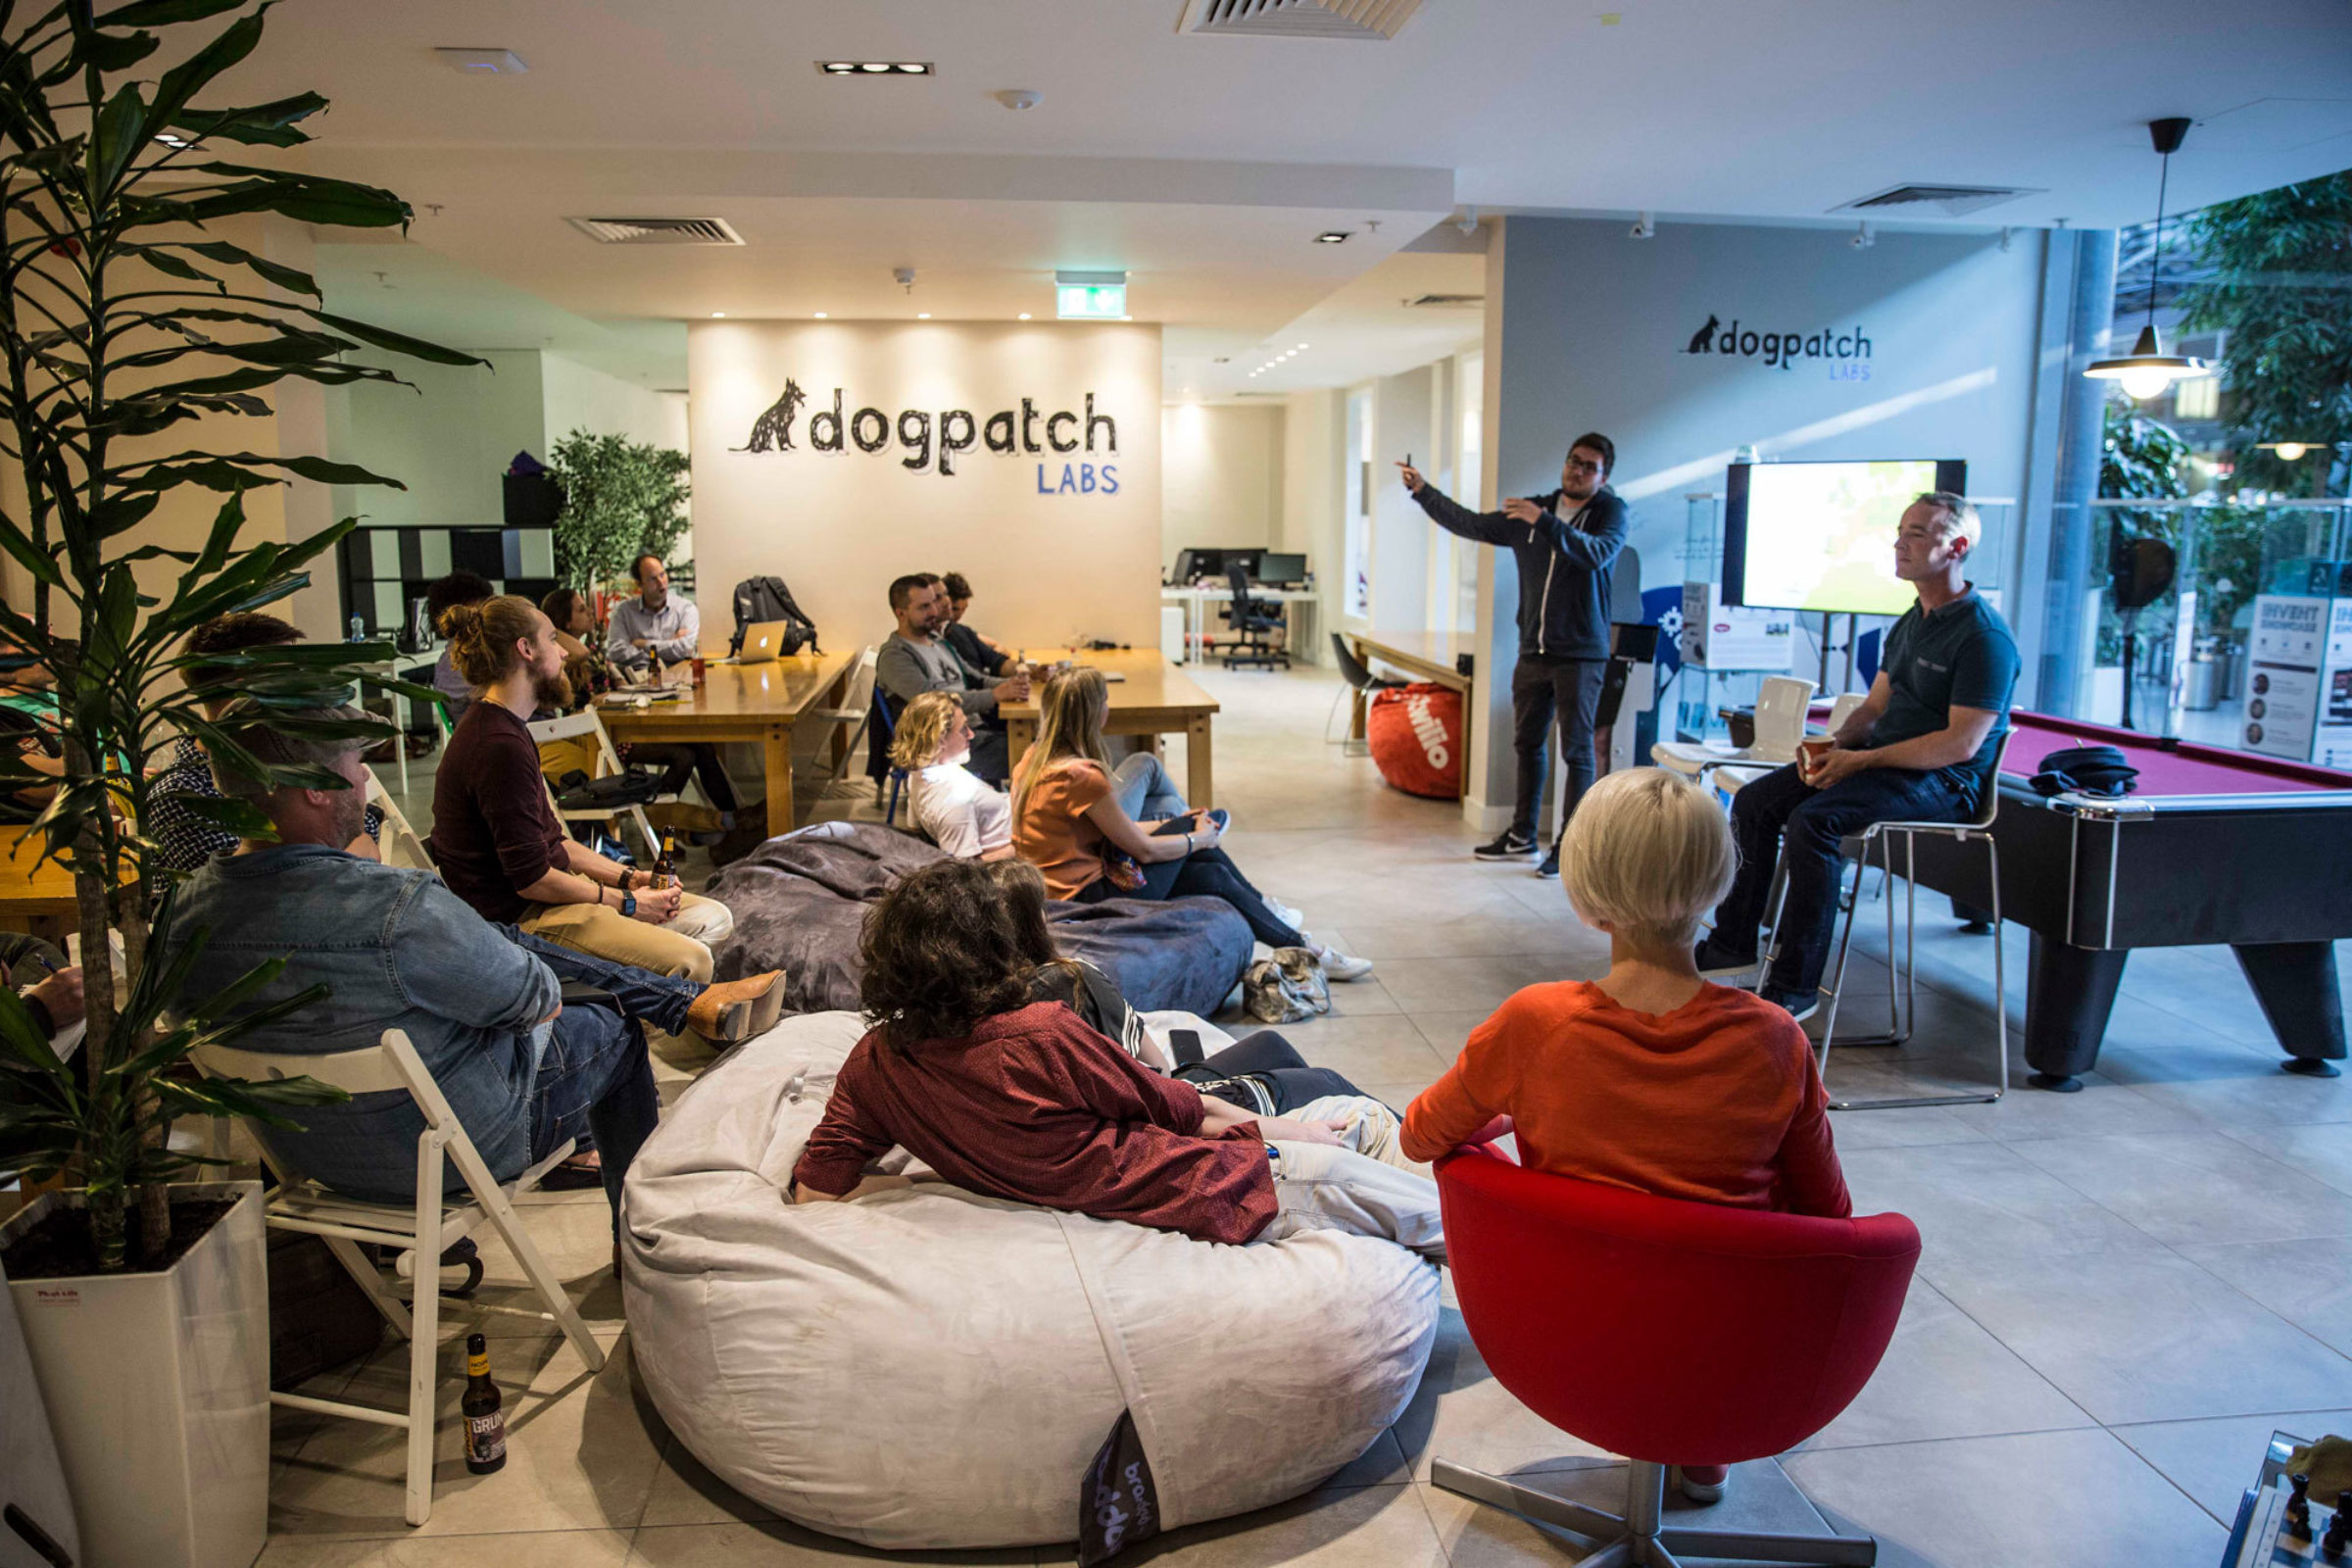 Creative Workspace Dogpatch Labs Dublin Lagom